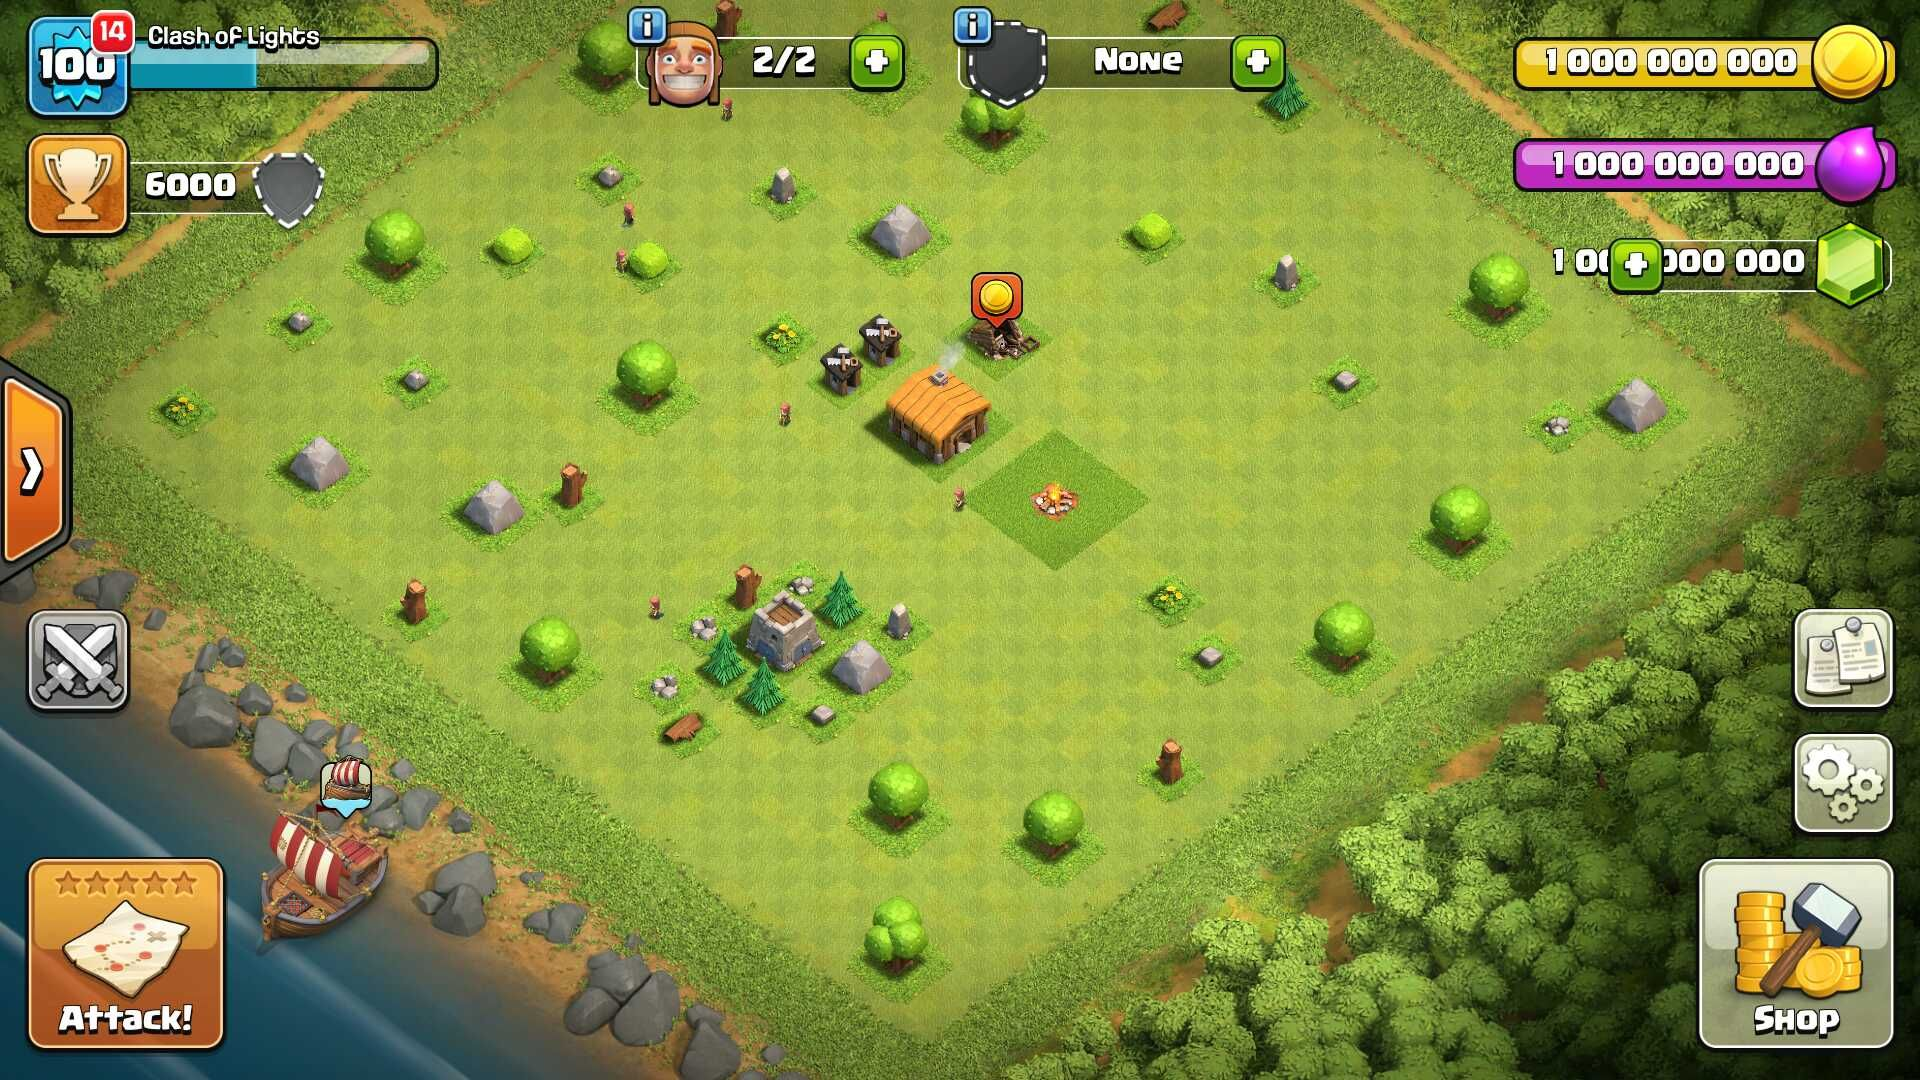 fdc9410ab620ecab71160c331abfcf81 - How To Get More Gold In Clash Of Clans